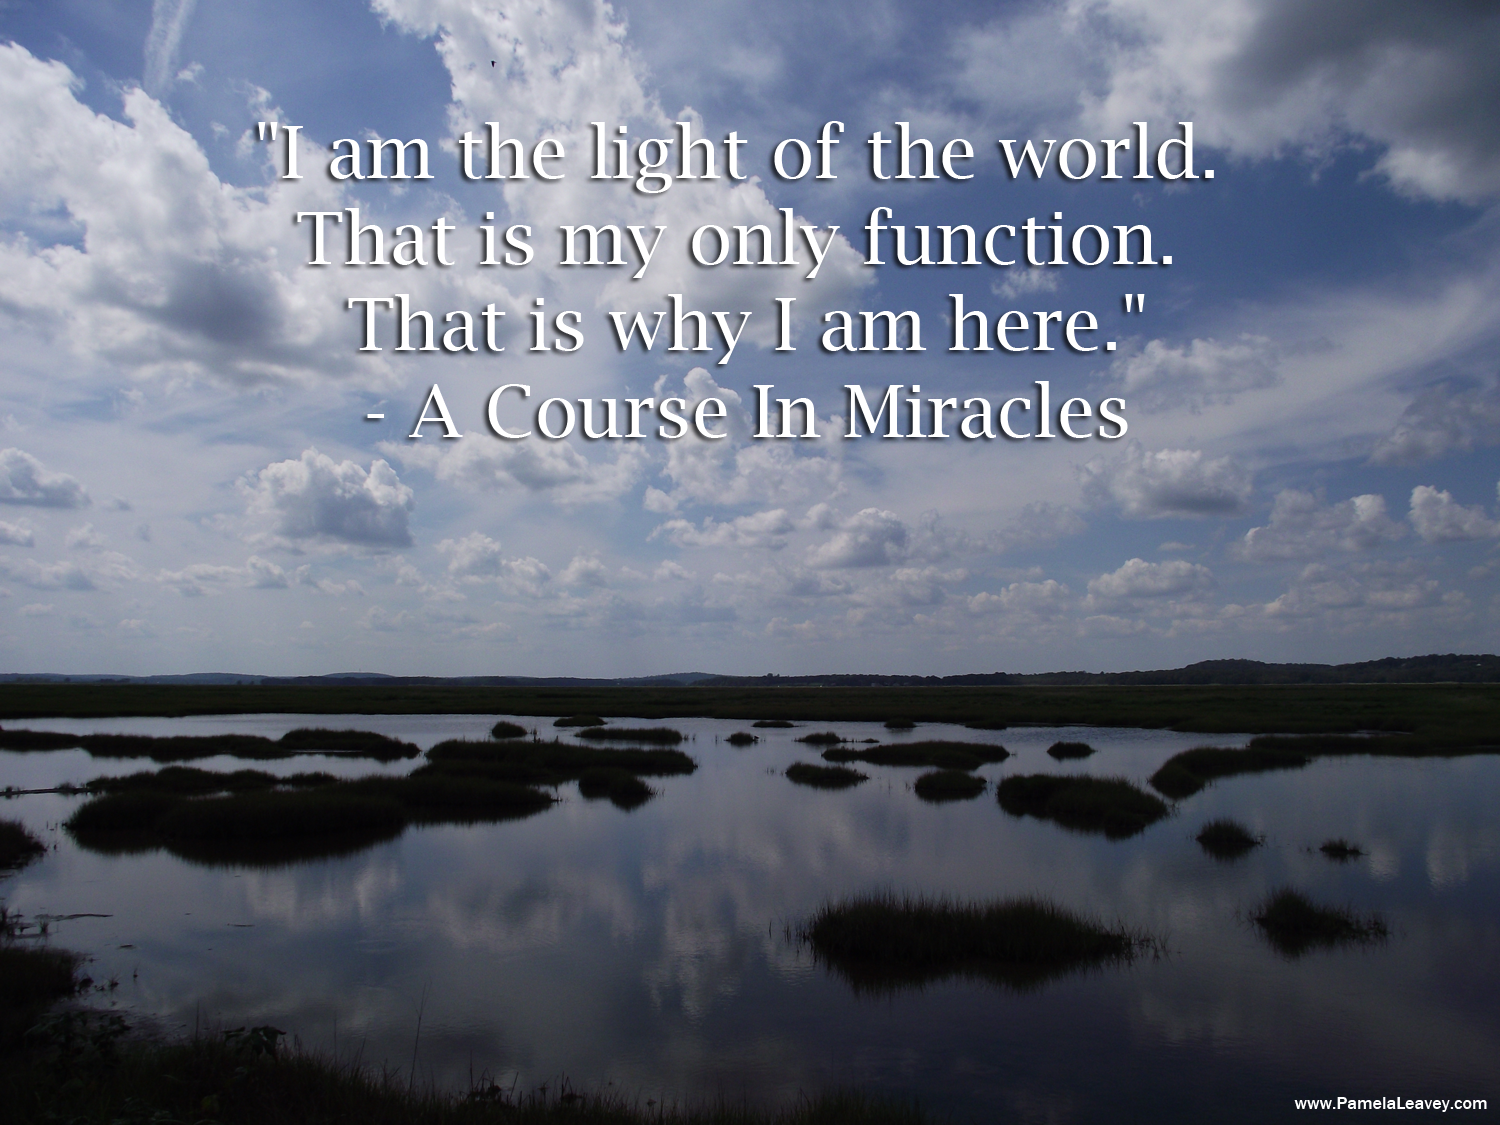 A Course In Miracles Quotes Pincrewel Girl On A Course In Miracles  Pinterest